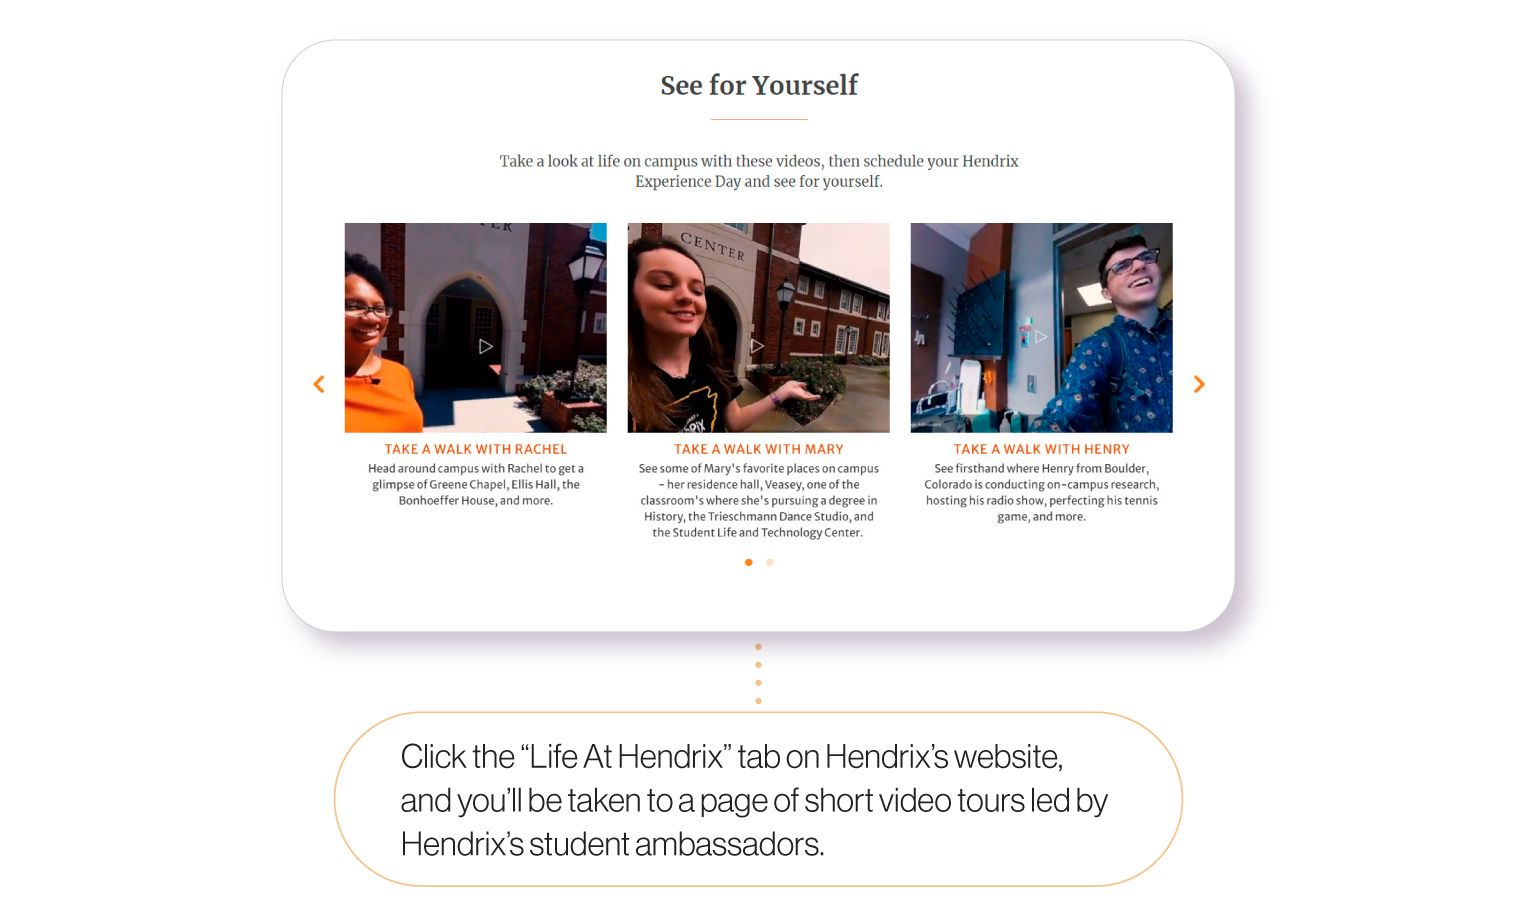 Image: An example from Hendrix College's website of their virtual campus tour videos. Just click the 'Life at Hendrix' tab on Hendrix's website, and you'll be taken to a page of short video tours led by Hendrix's student ambassadors.